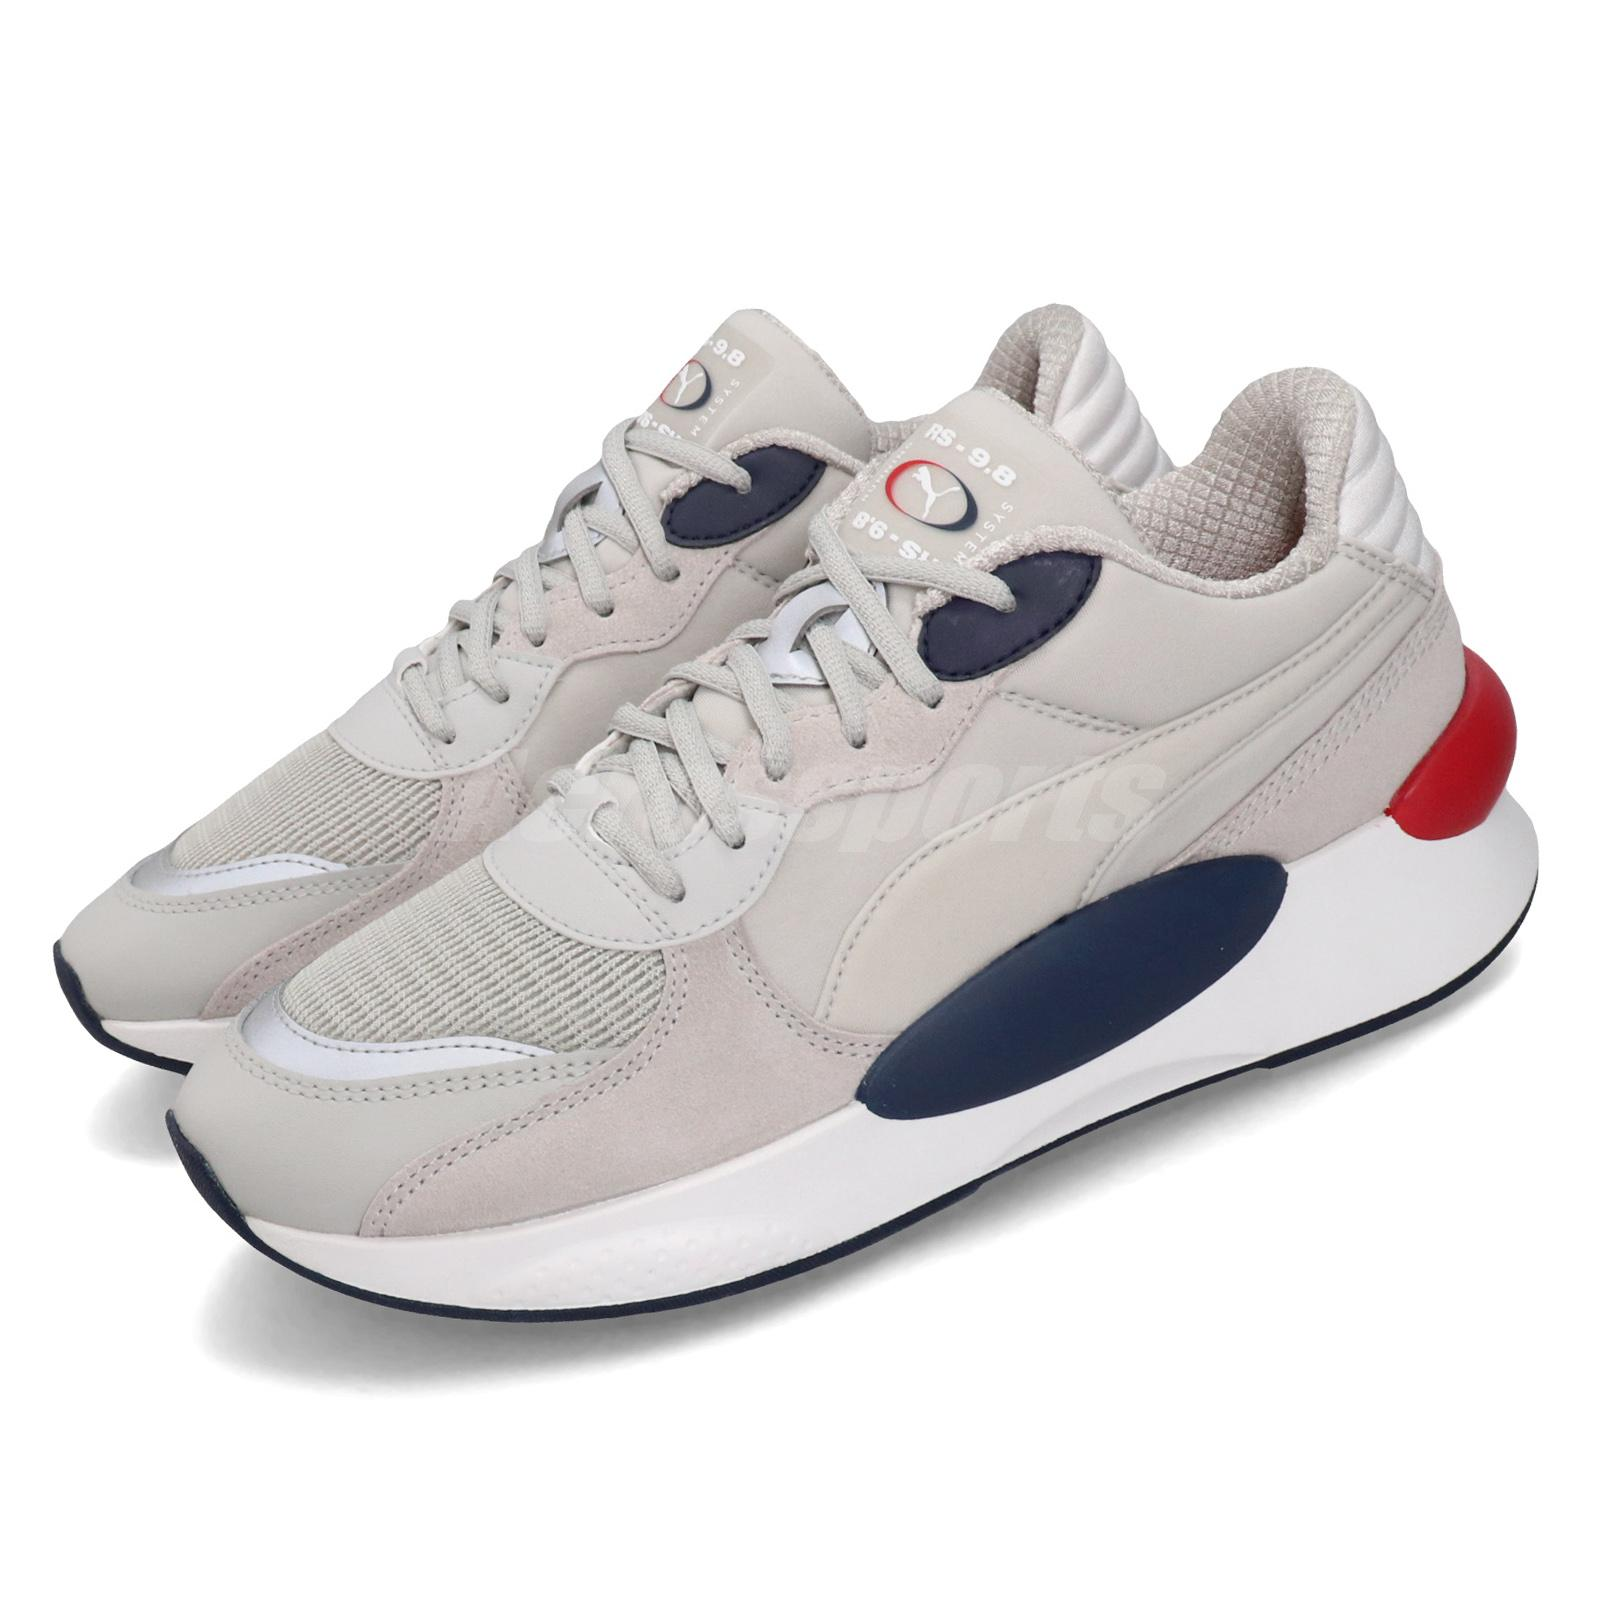 Details about Puma RS 9.8 Gravity Running System Grey Peacoat Men Women  Unisex Shoes 370370-03